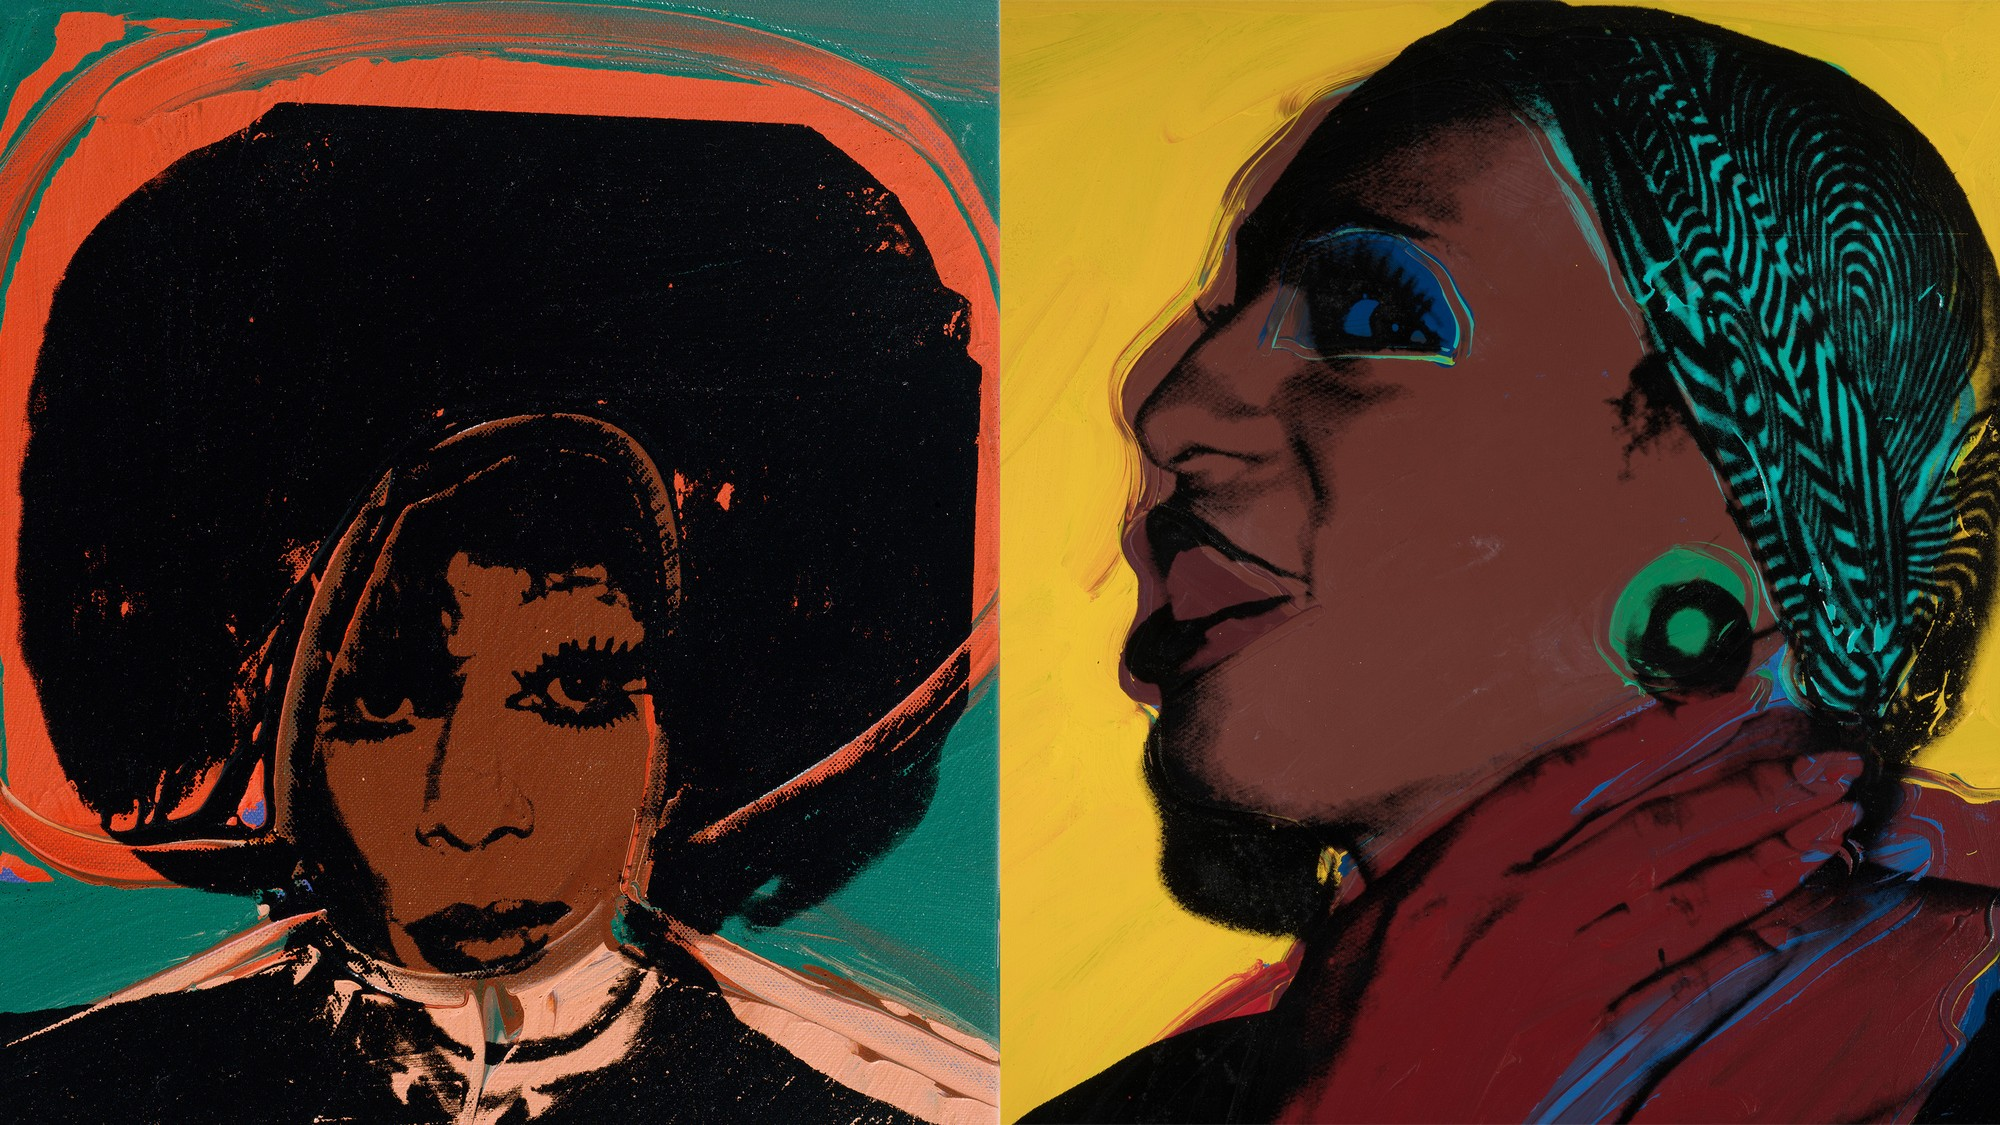 Andy Warhol S Provocative Unseen Works Are Coming To Tate Modern I D